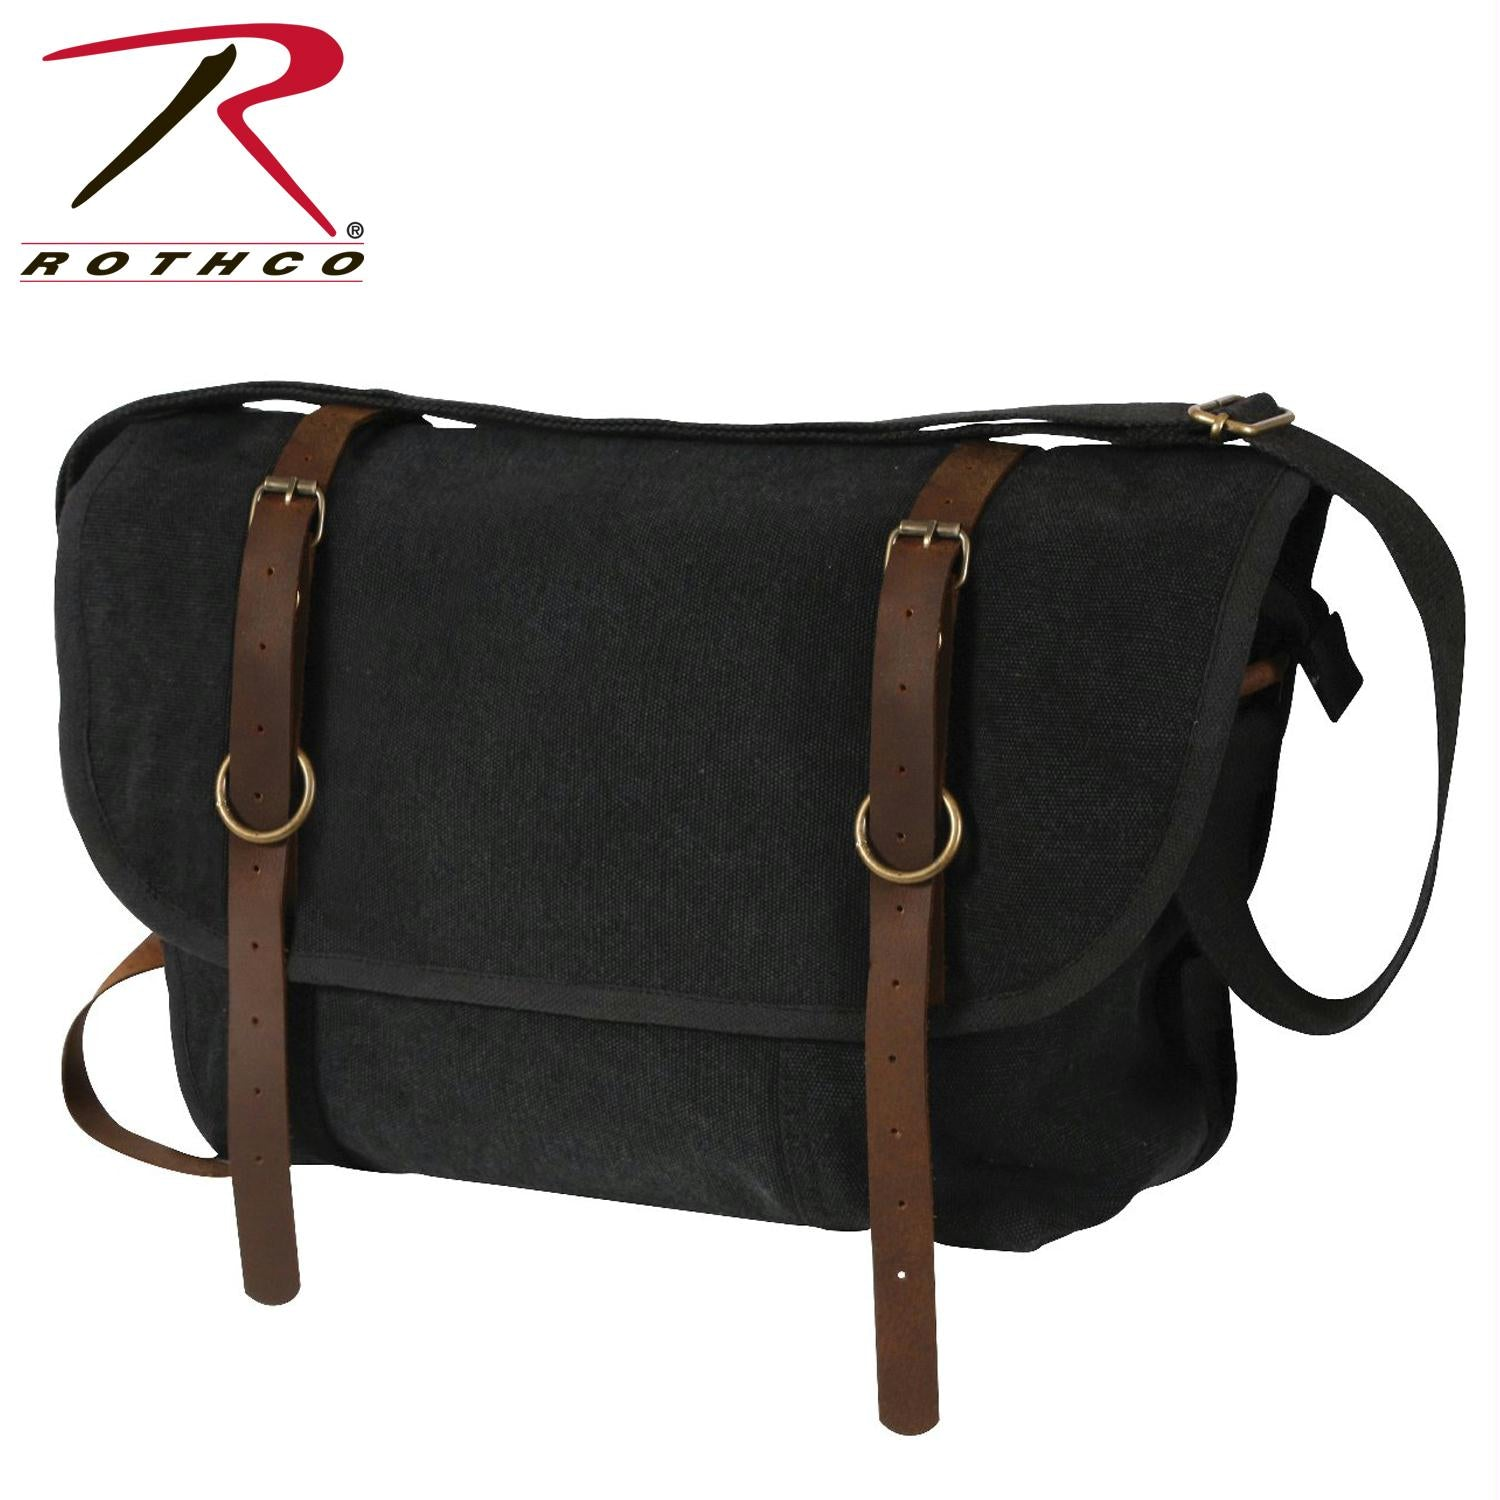 Rothco Vintage Canvas Explorer Shoulder Bag w/ Leather Accents - Black